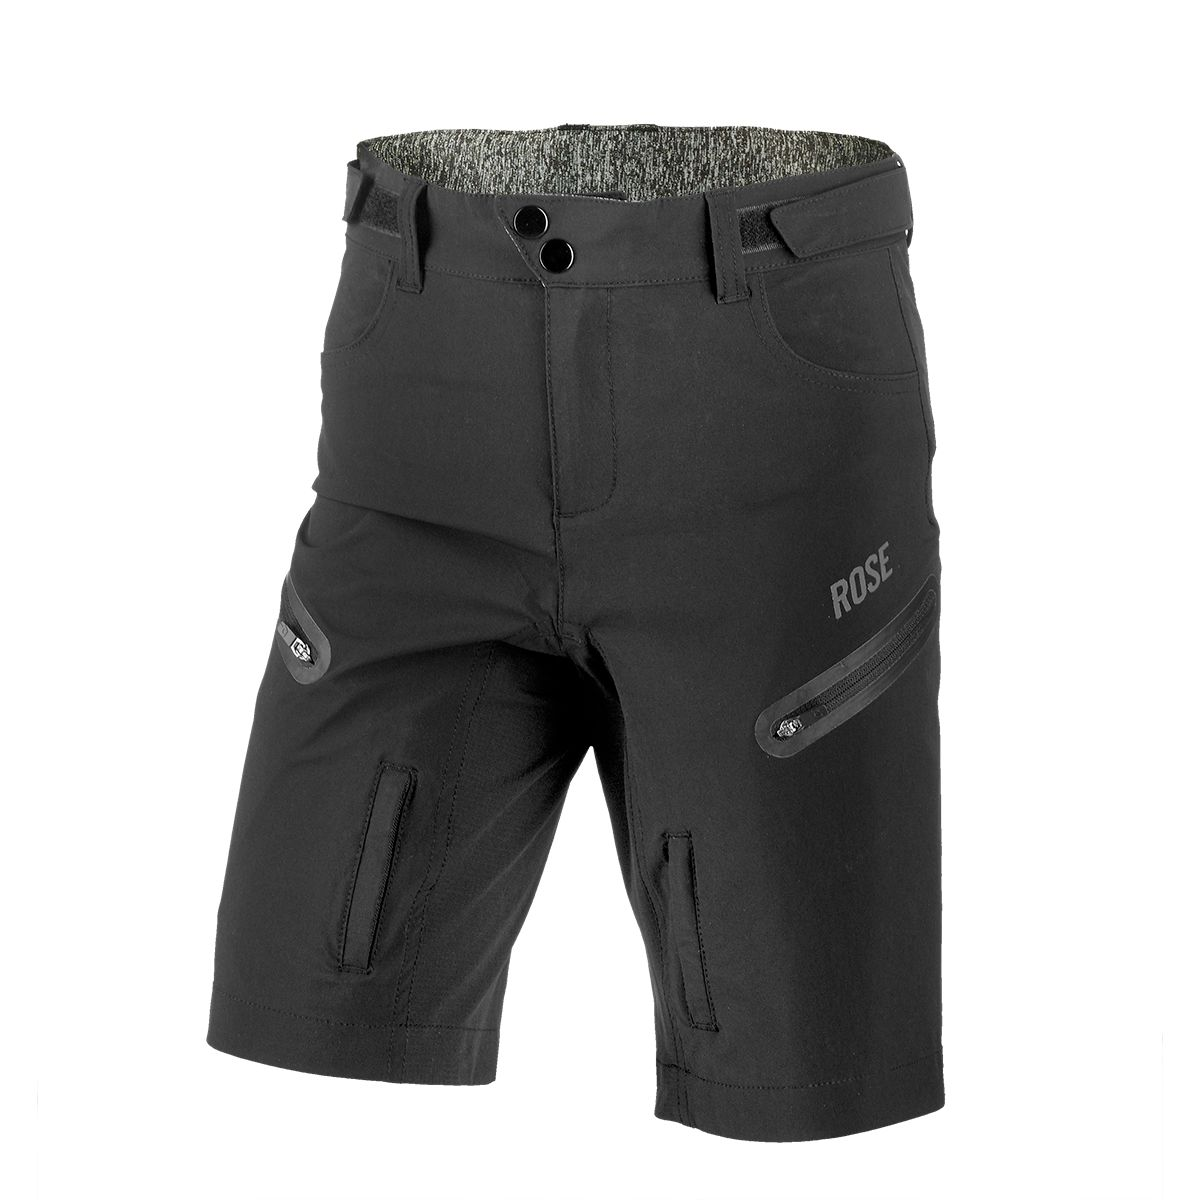 4 WAY HEATHER KIDS Cycling Shorts